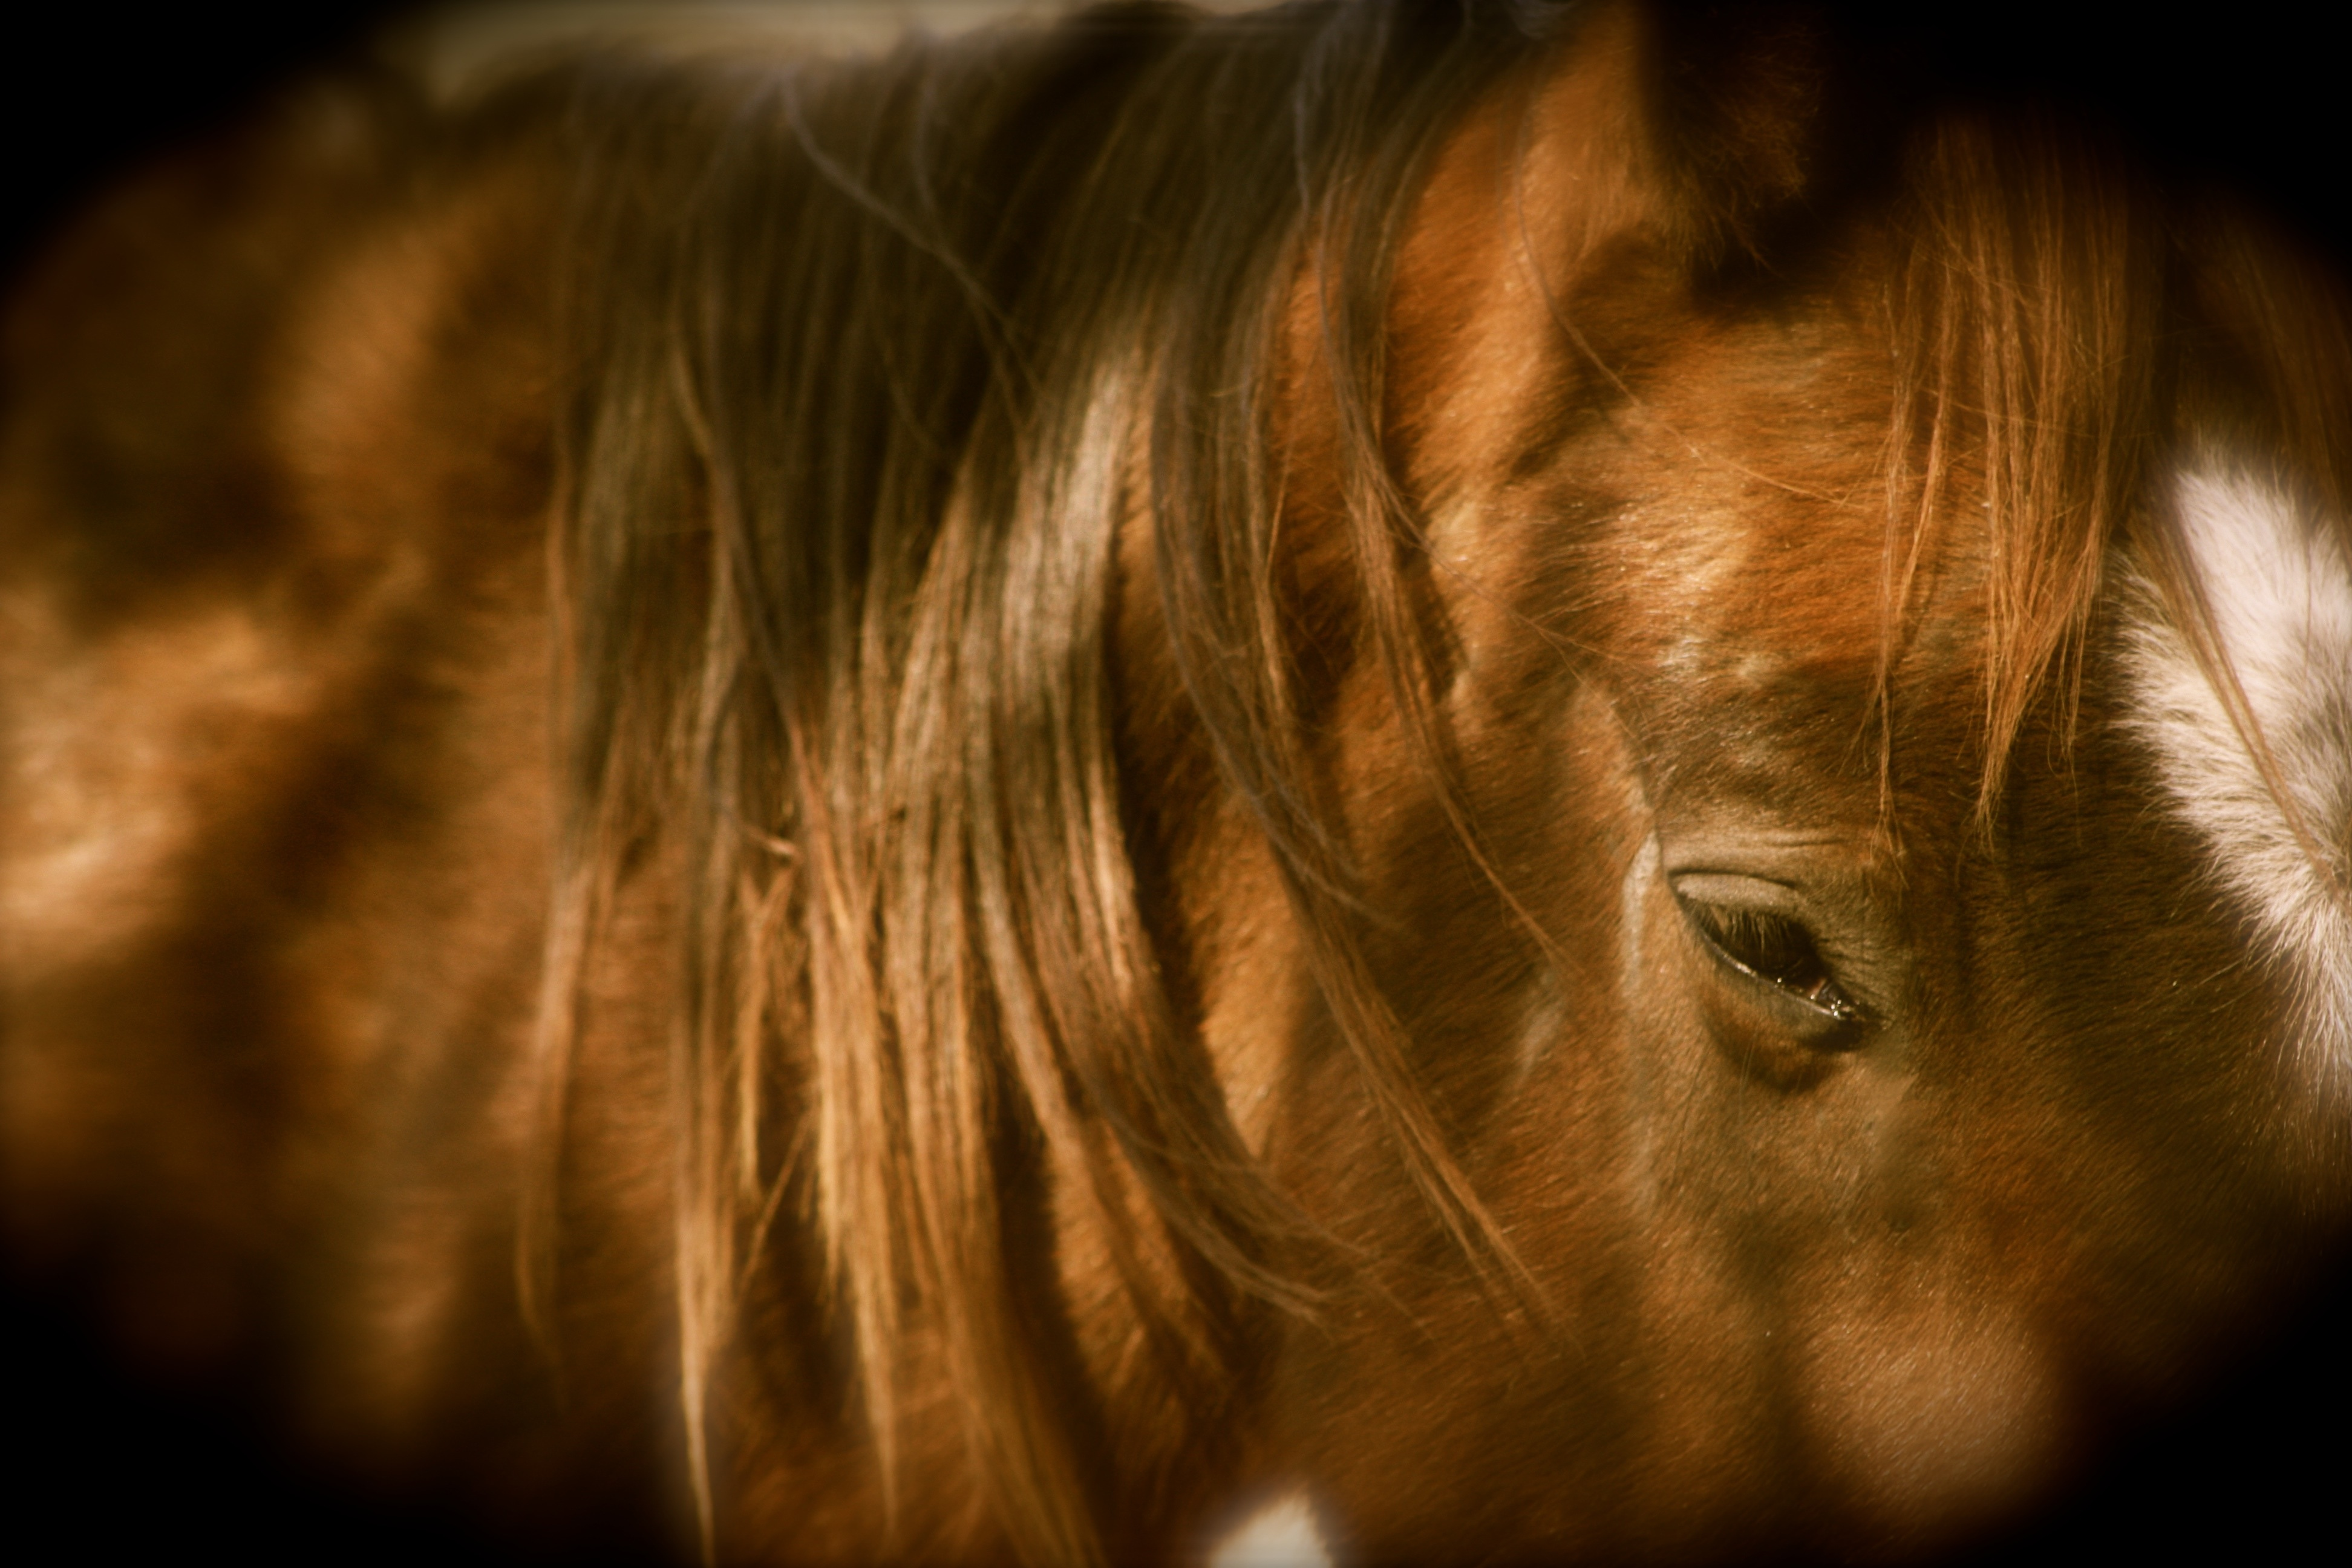 Stop  the slaughter of American horses - pass the SAFE act